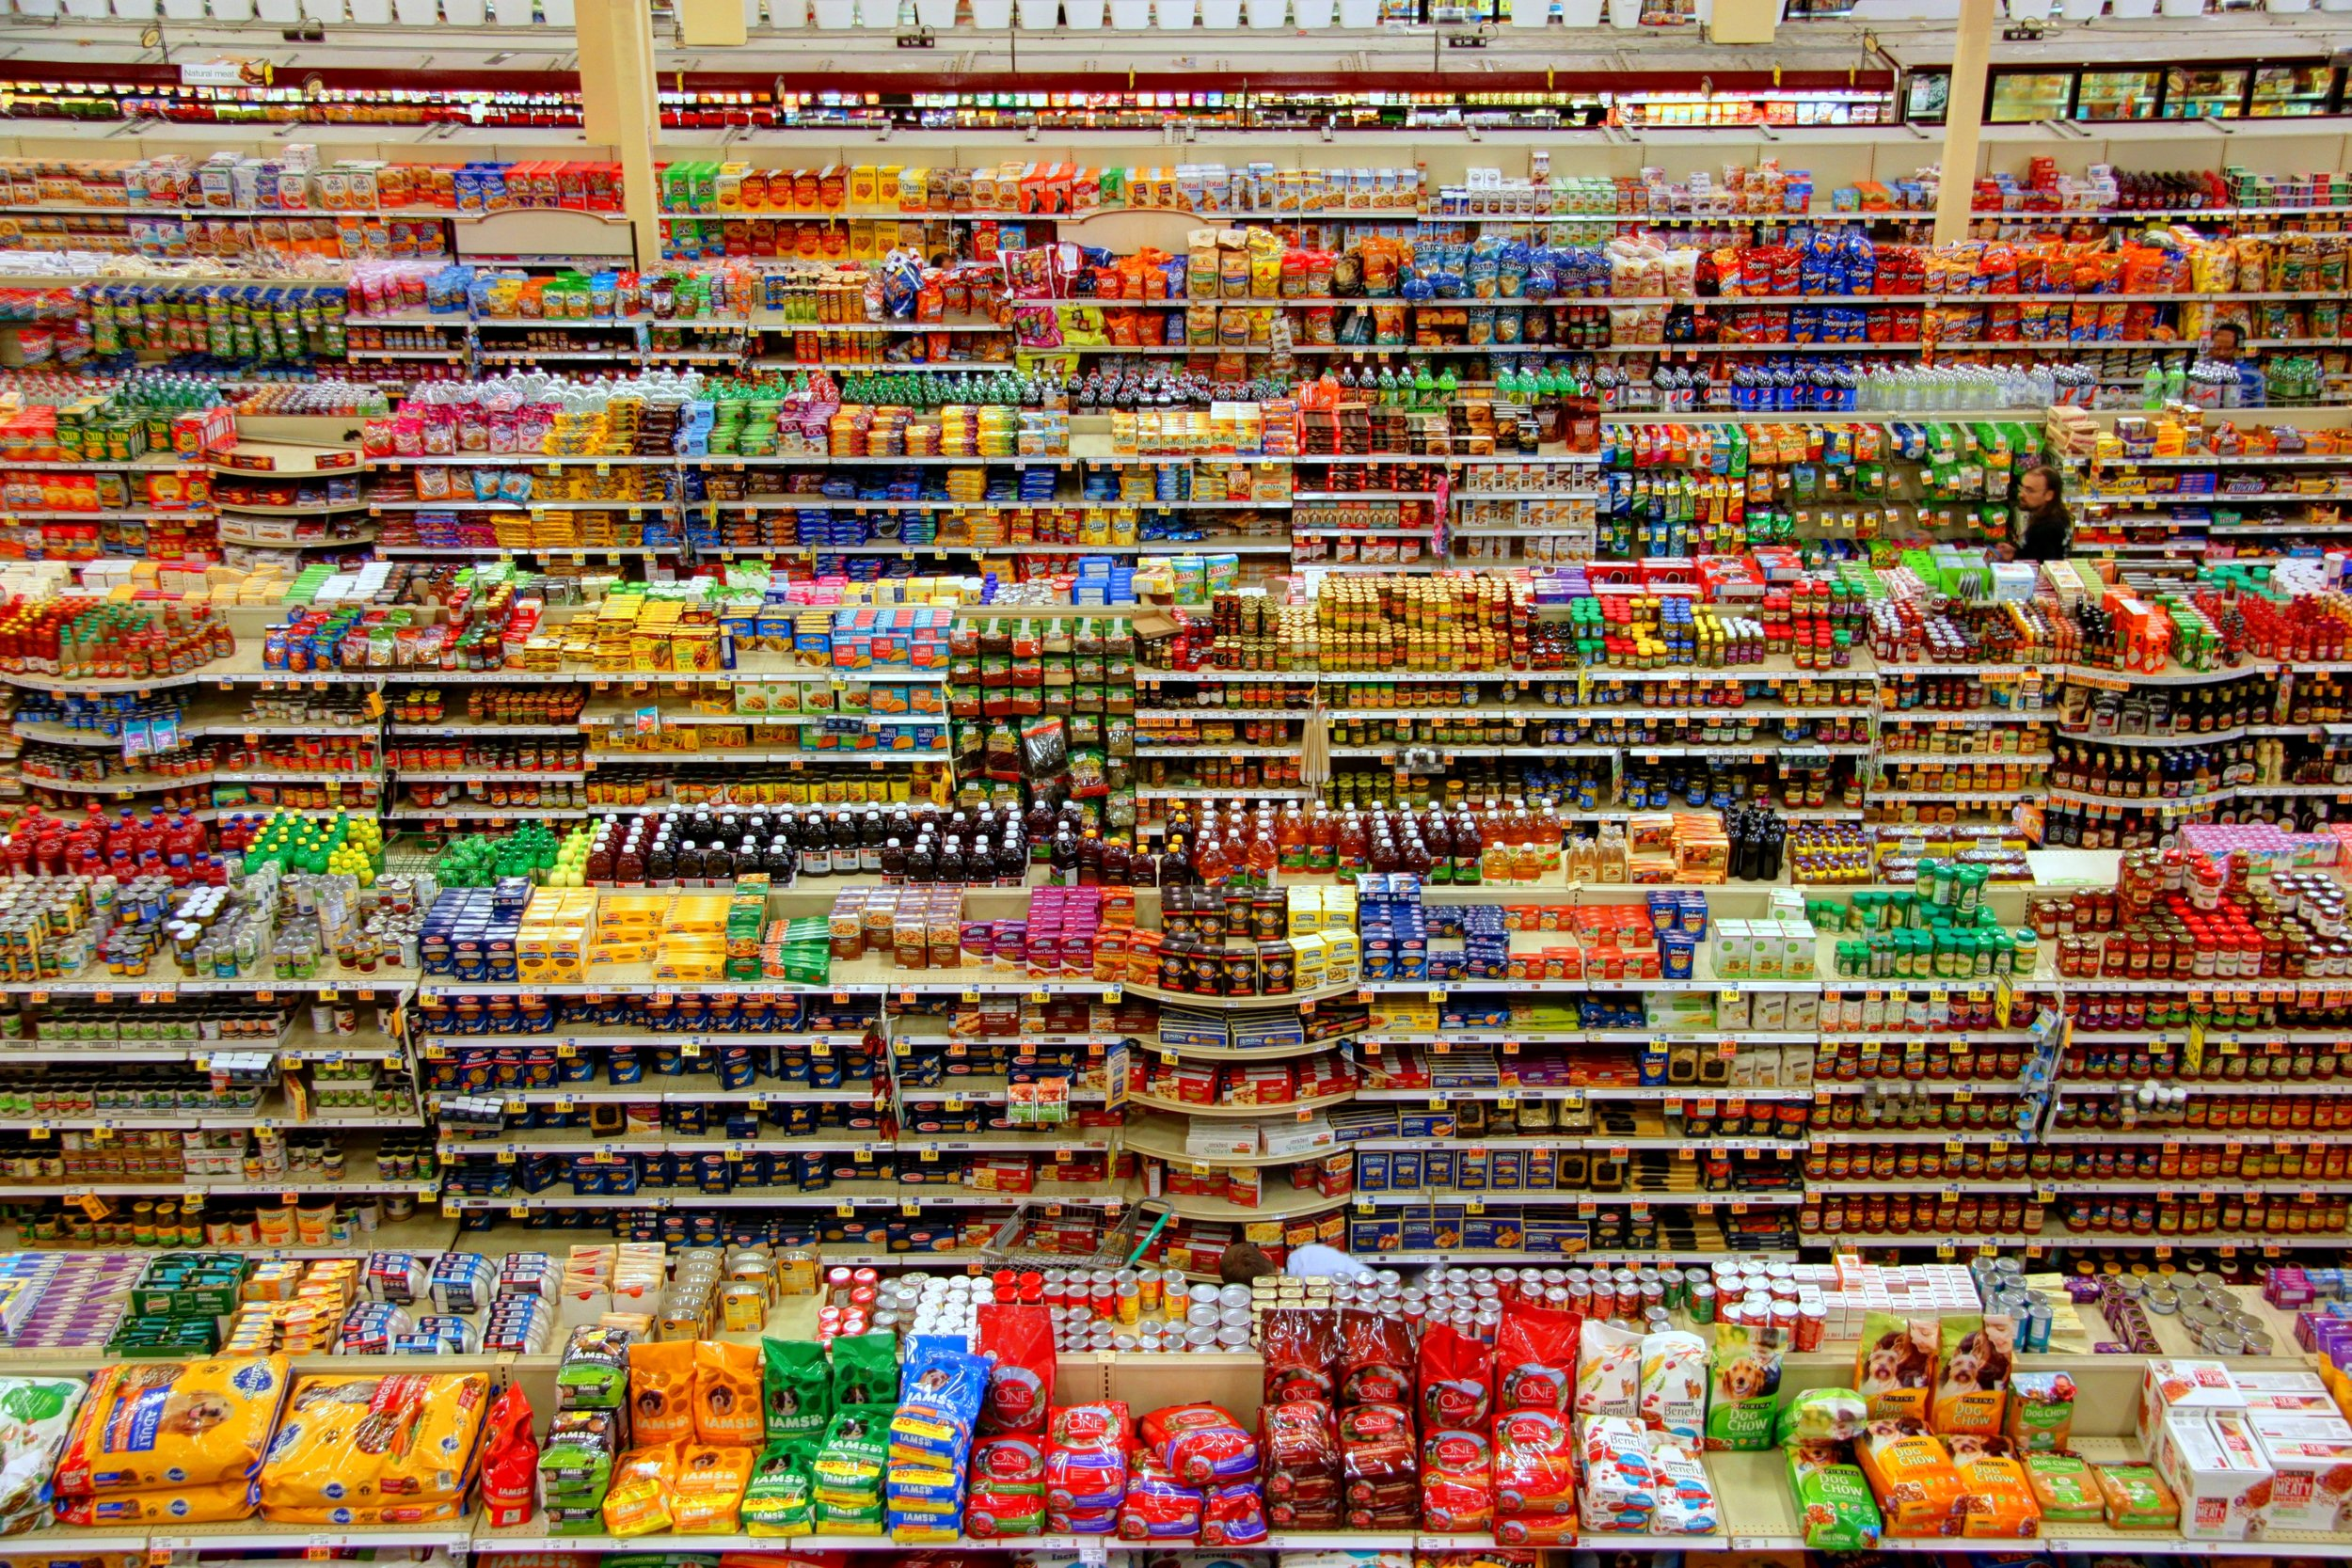 Object detection for retail shelf